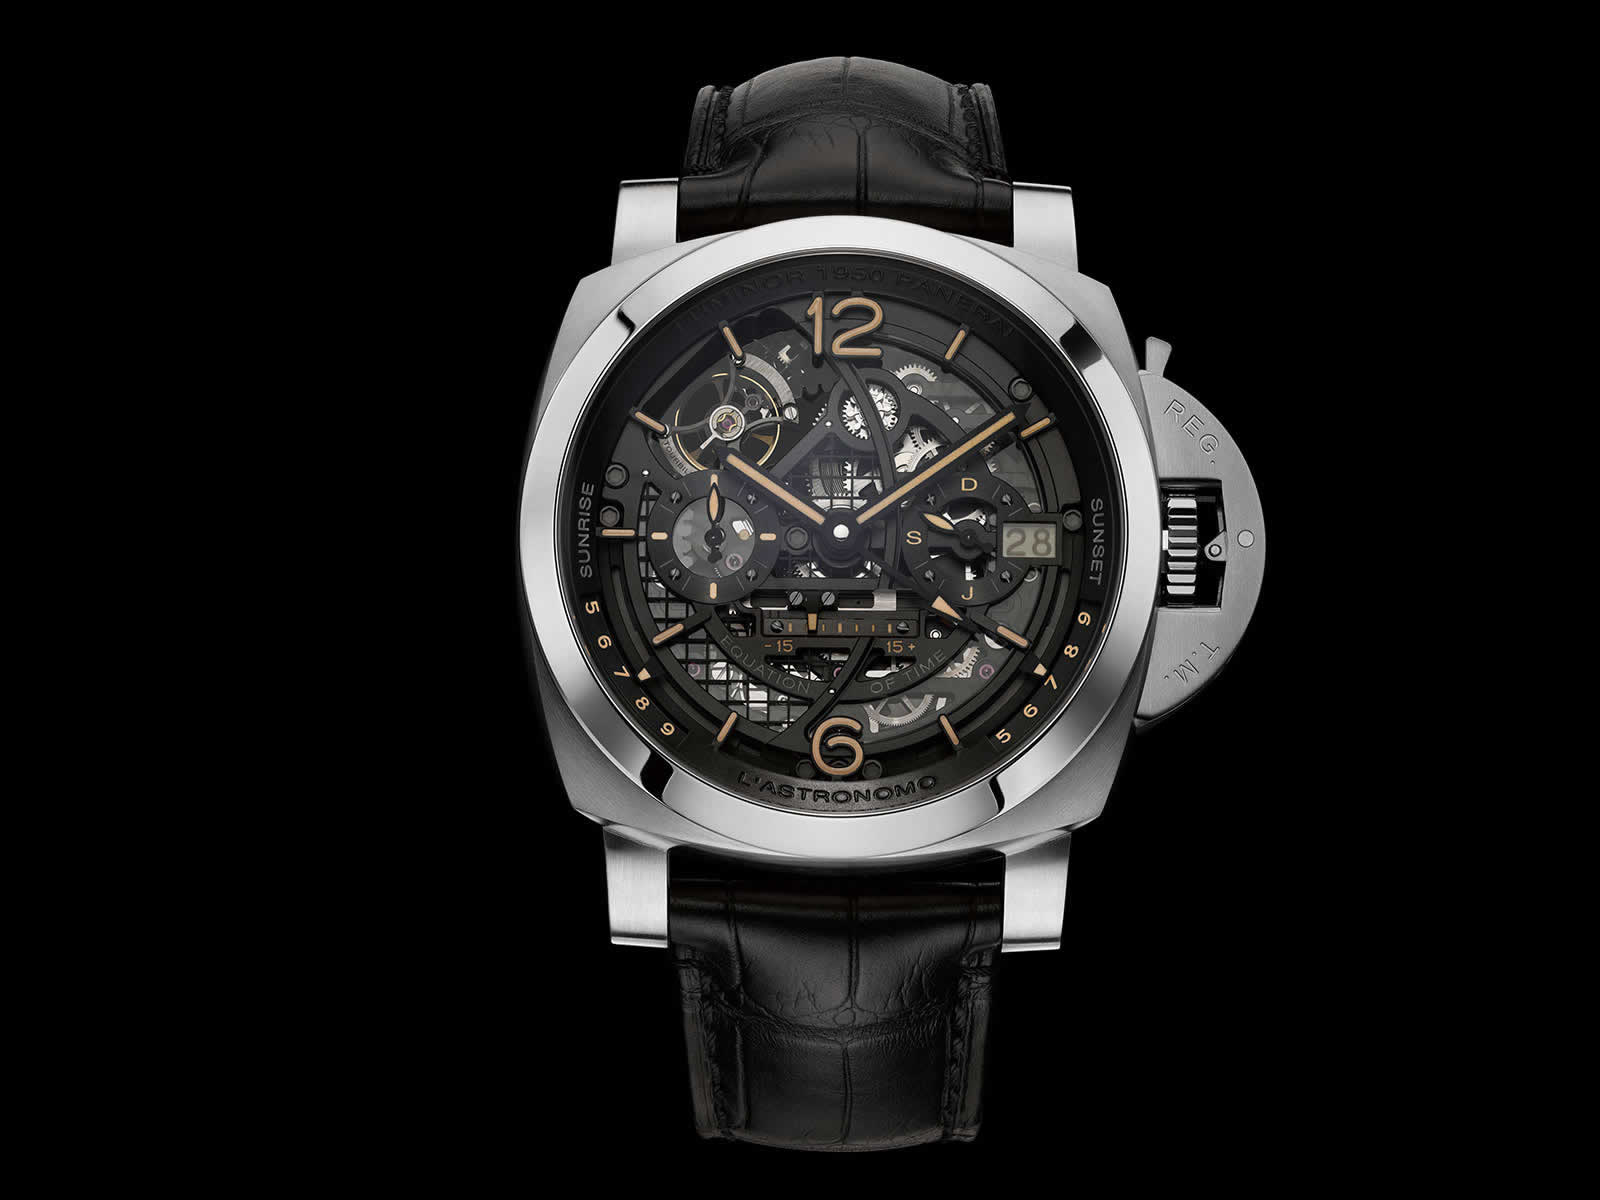 Panerai-L-Astronomo-Luminor-1950-Tourbillon-Moon-Phases-Equation-of-Time-Gmt-Pam00920-front.jpg